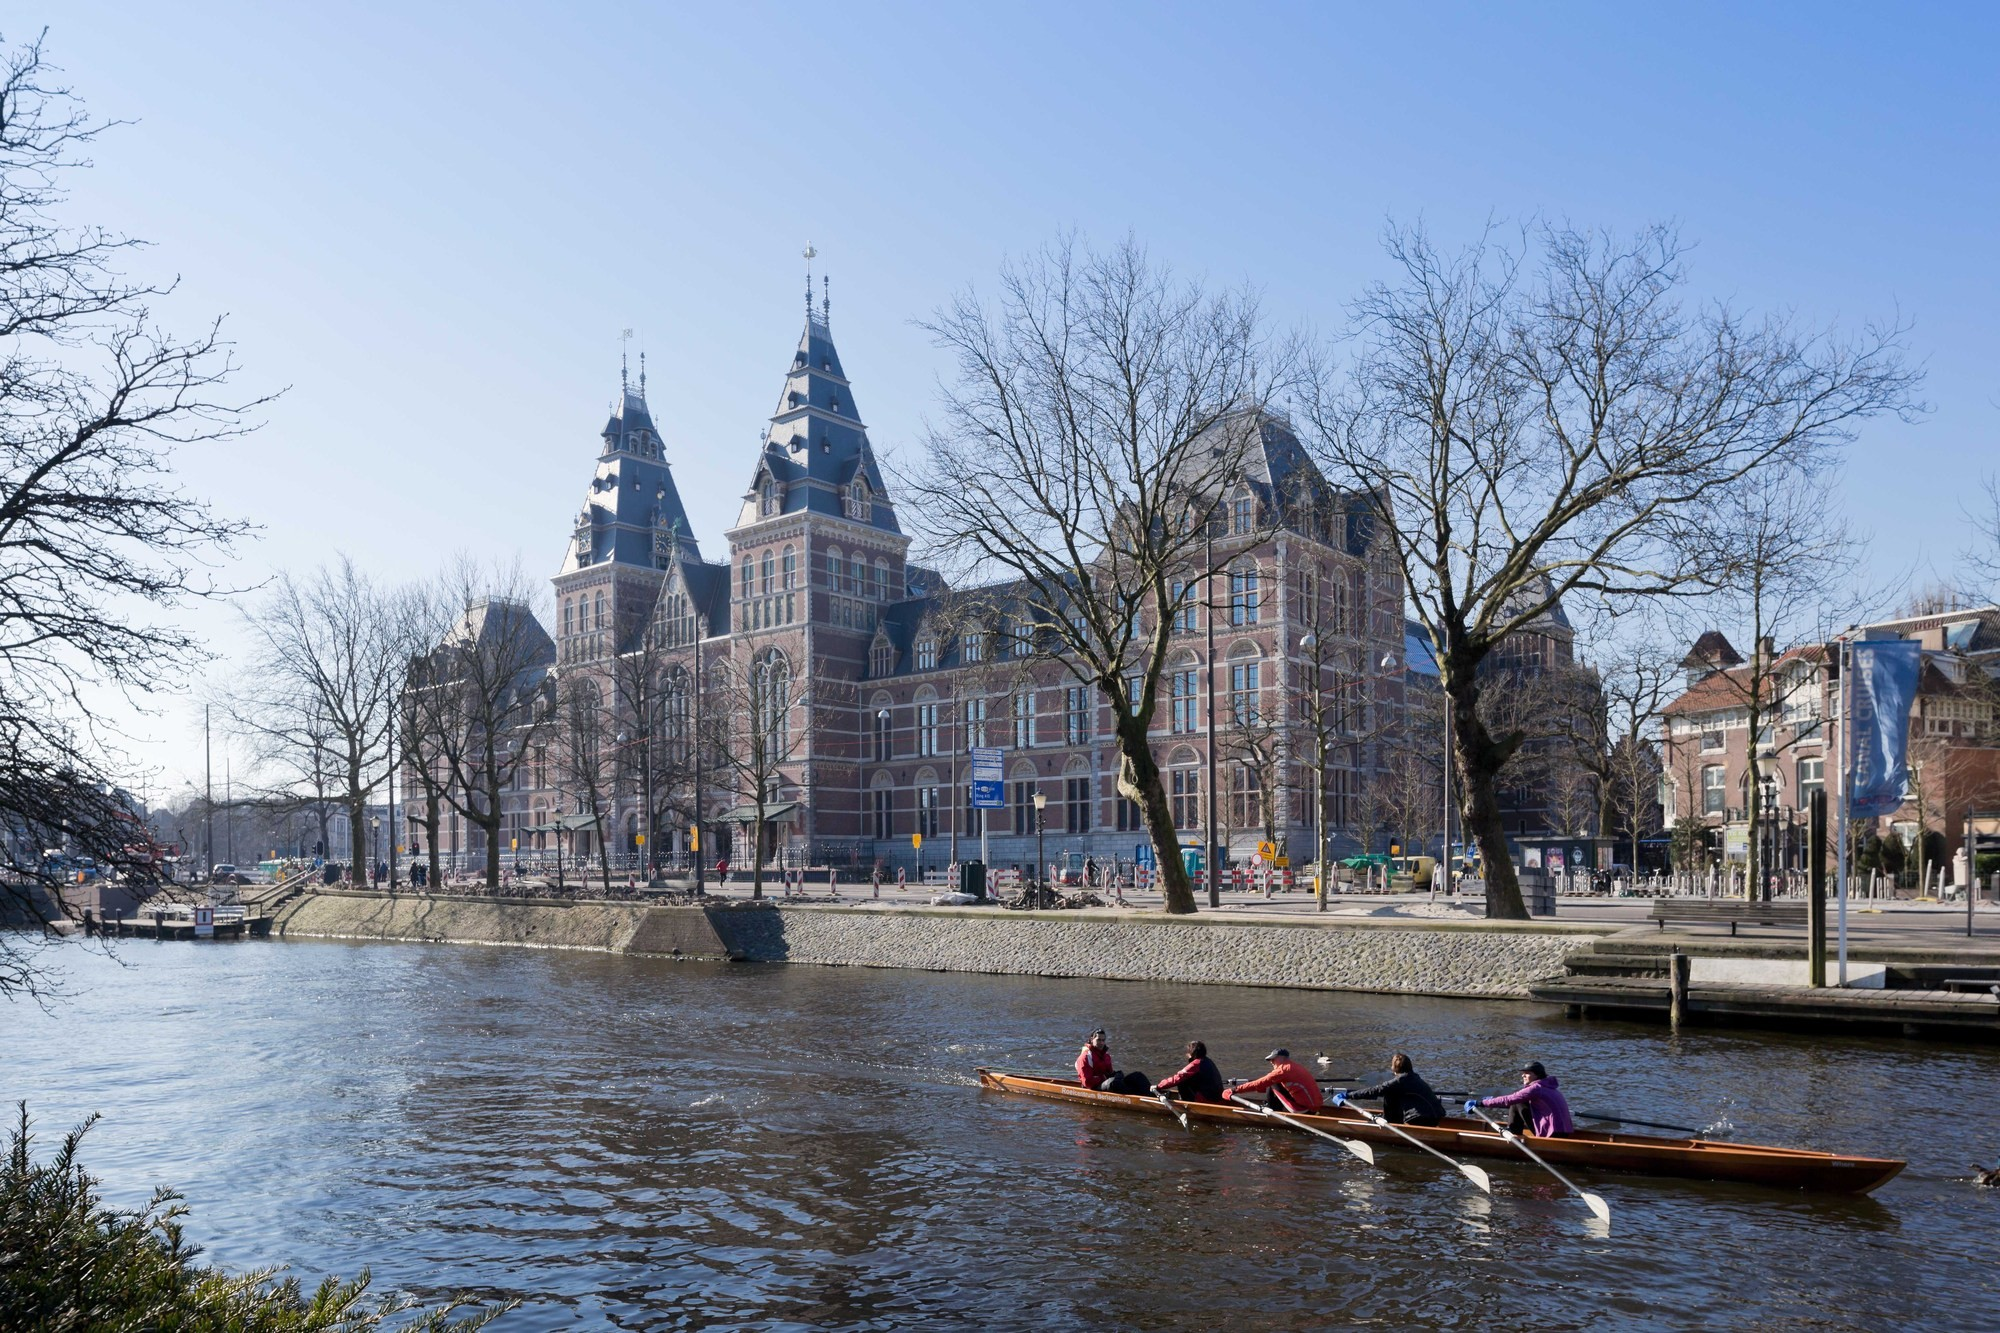 Amsterdam's Rijksmuseum Named European Museum Of The Year, Rijksmuseum, Amsterdam. Image © Iwan Baan